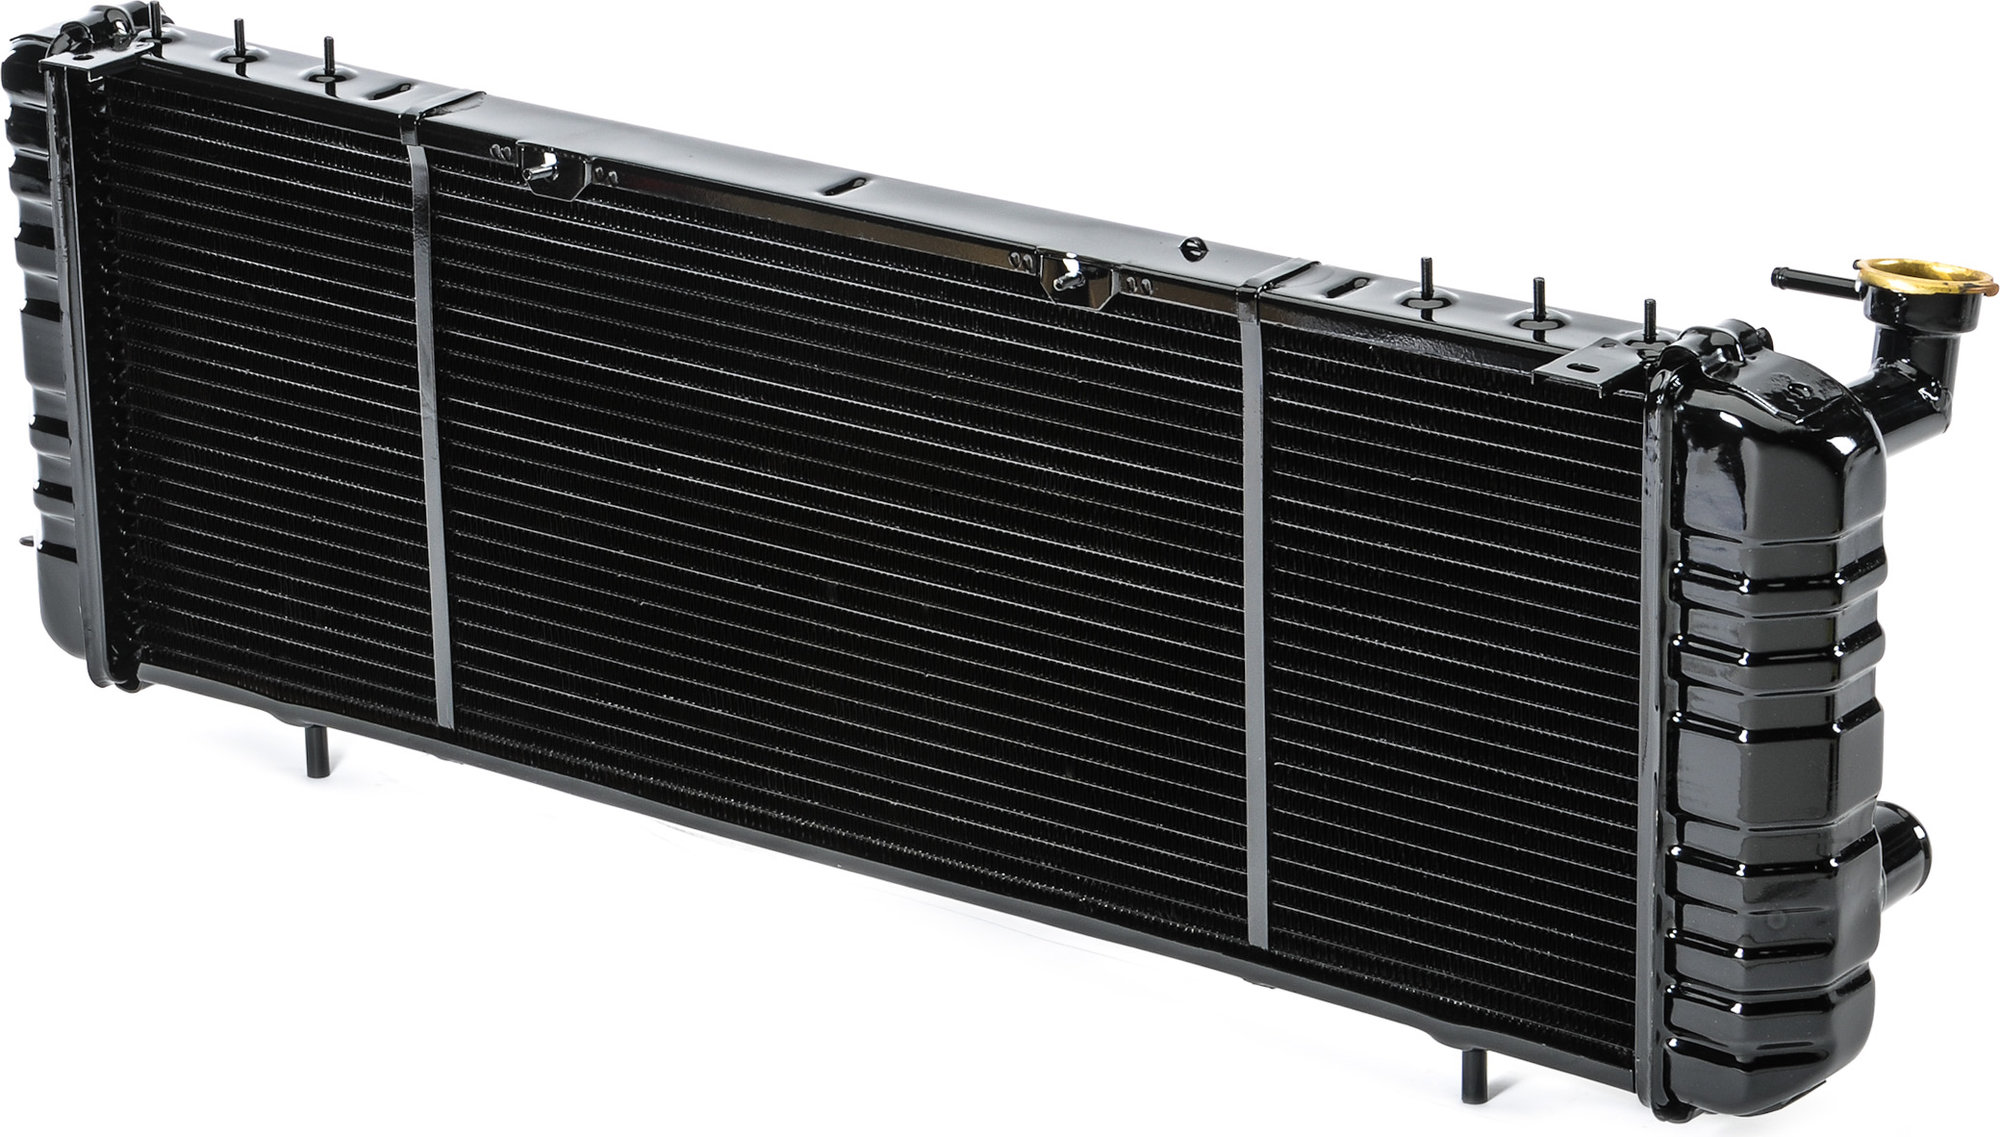 hight resolution of csf 2670 oe replacement radiator with metal tank aluminum core oil cooler for 91 01 jeep cherokee xj with 2 5l 4 0l quadratec